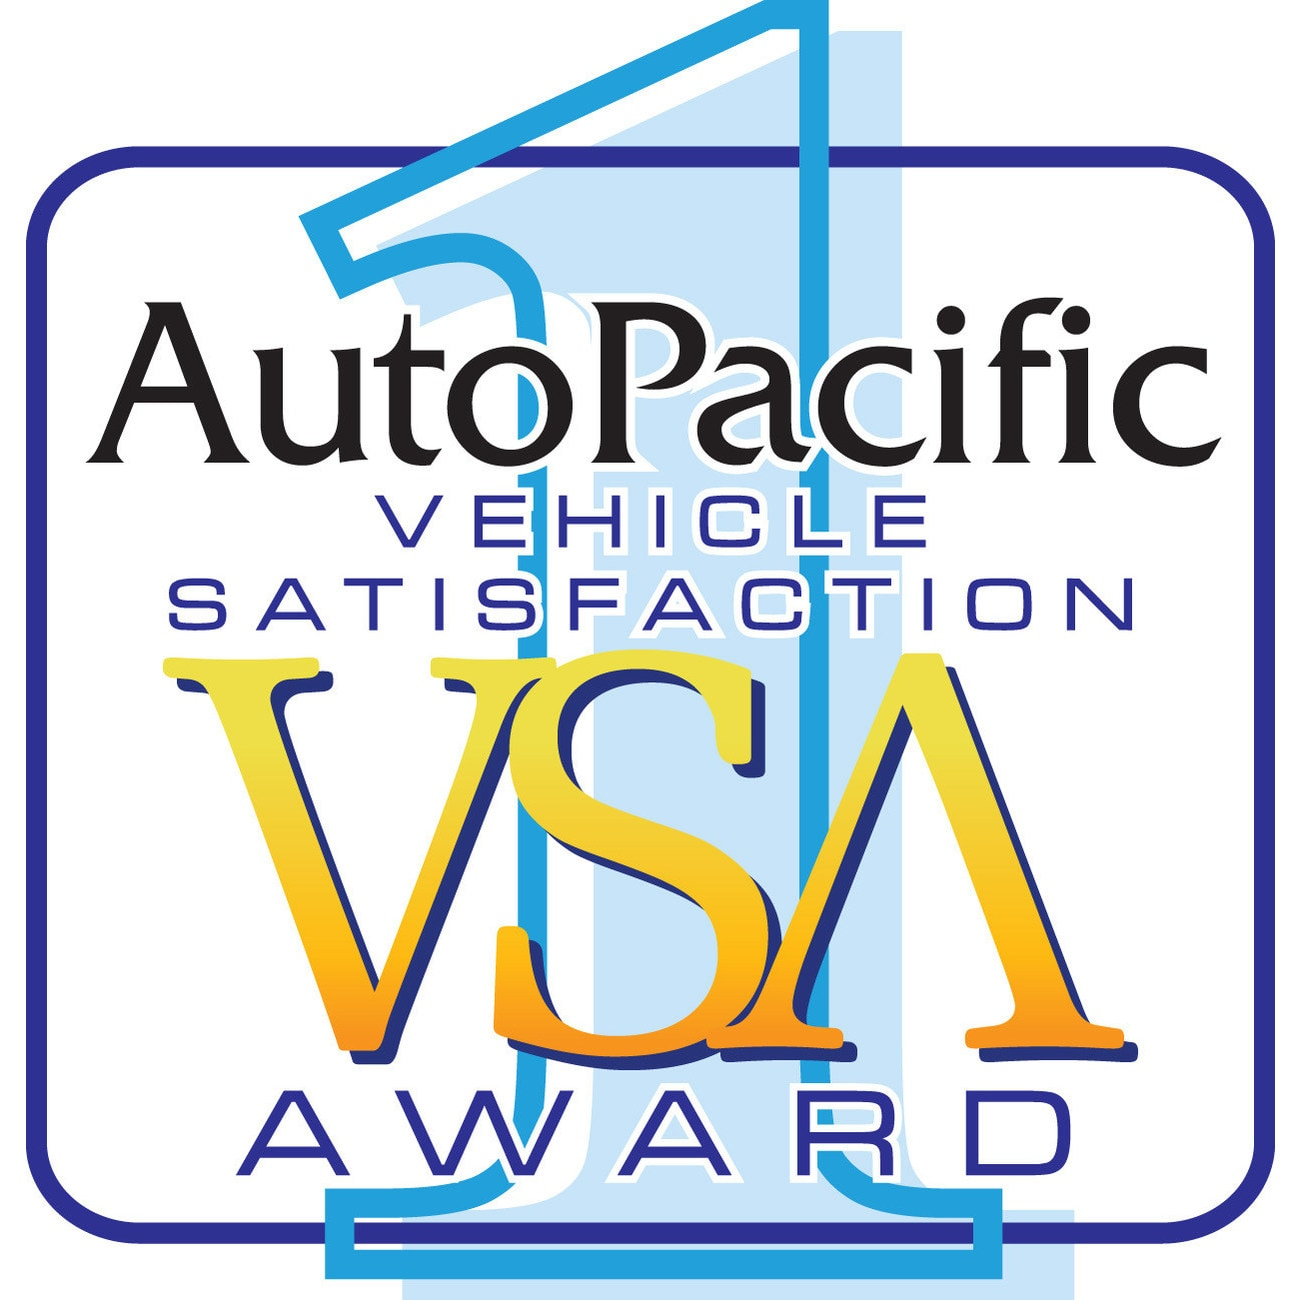 2020 AutoPacific Vehicle Satisfaction Award